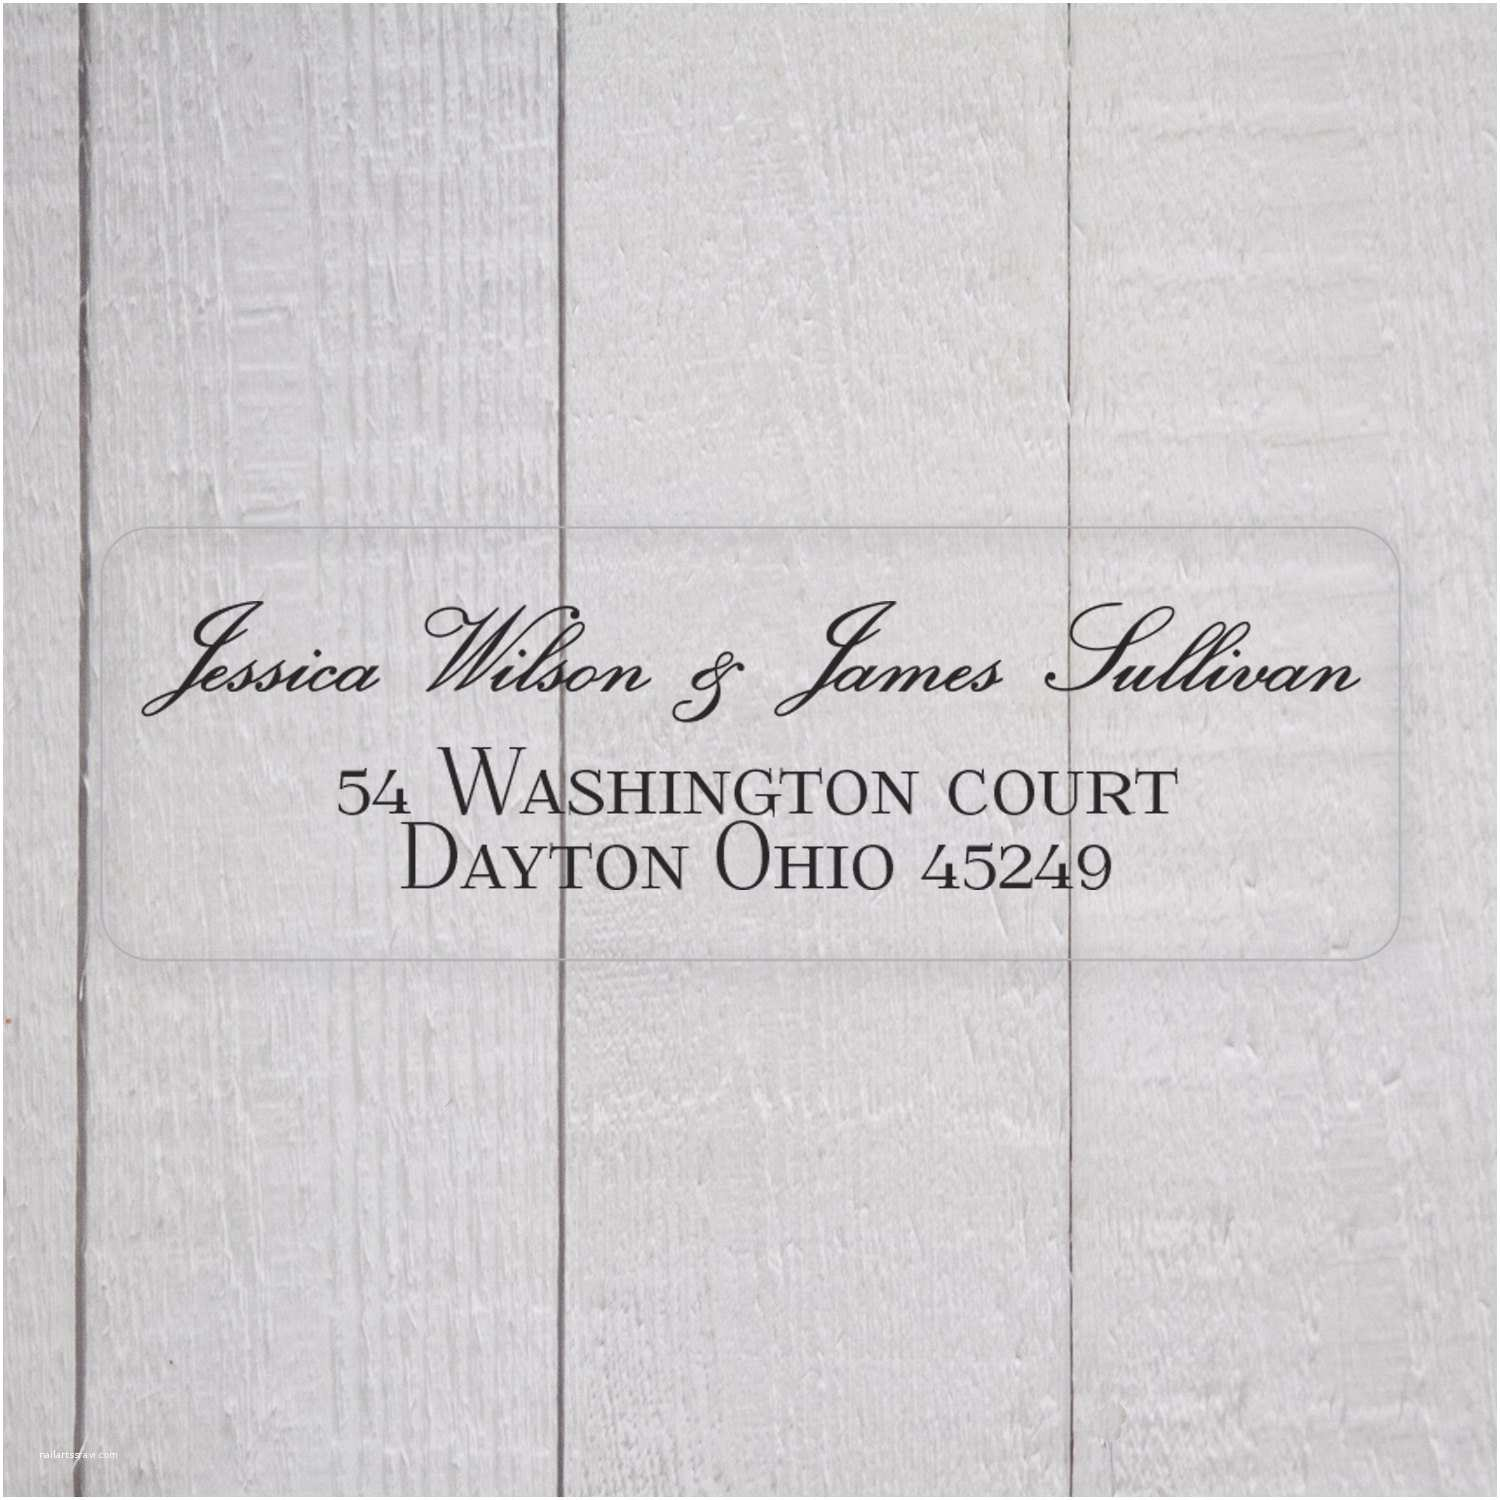 Return Labels for Wedding Invitations Wedding Invitation Return Address Labels White by